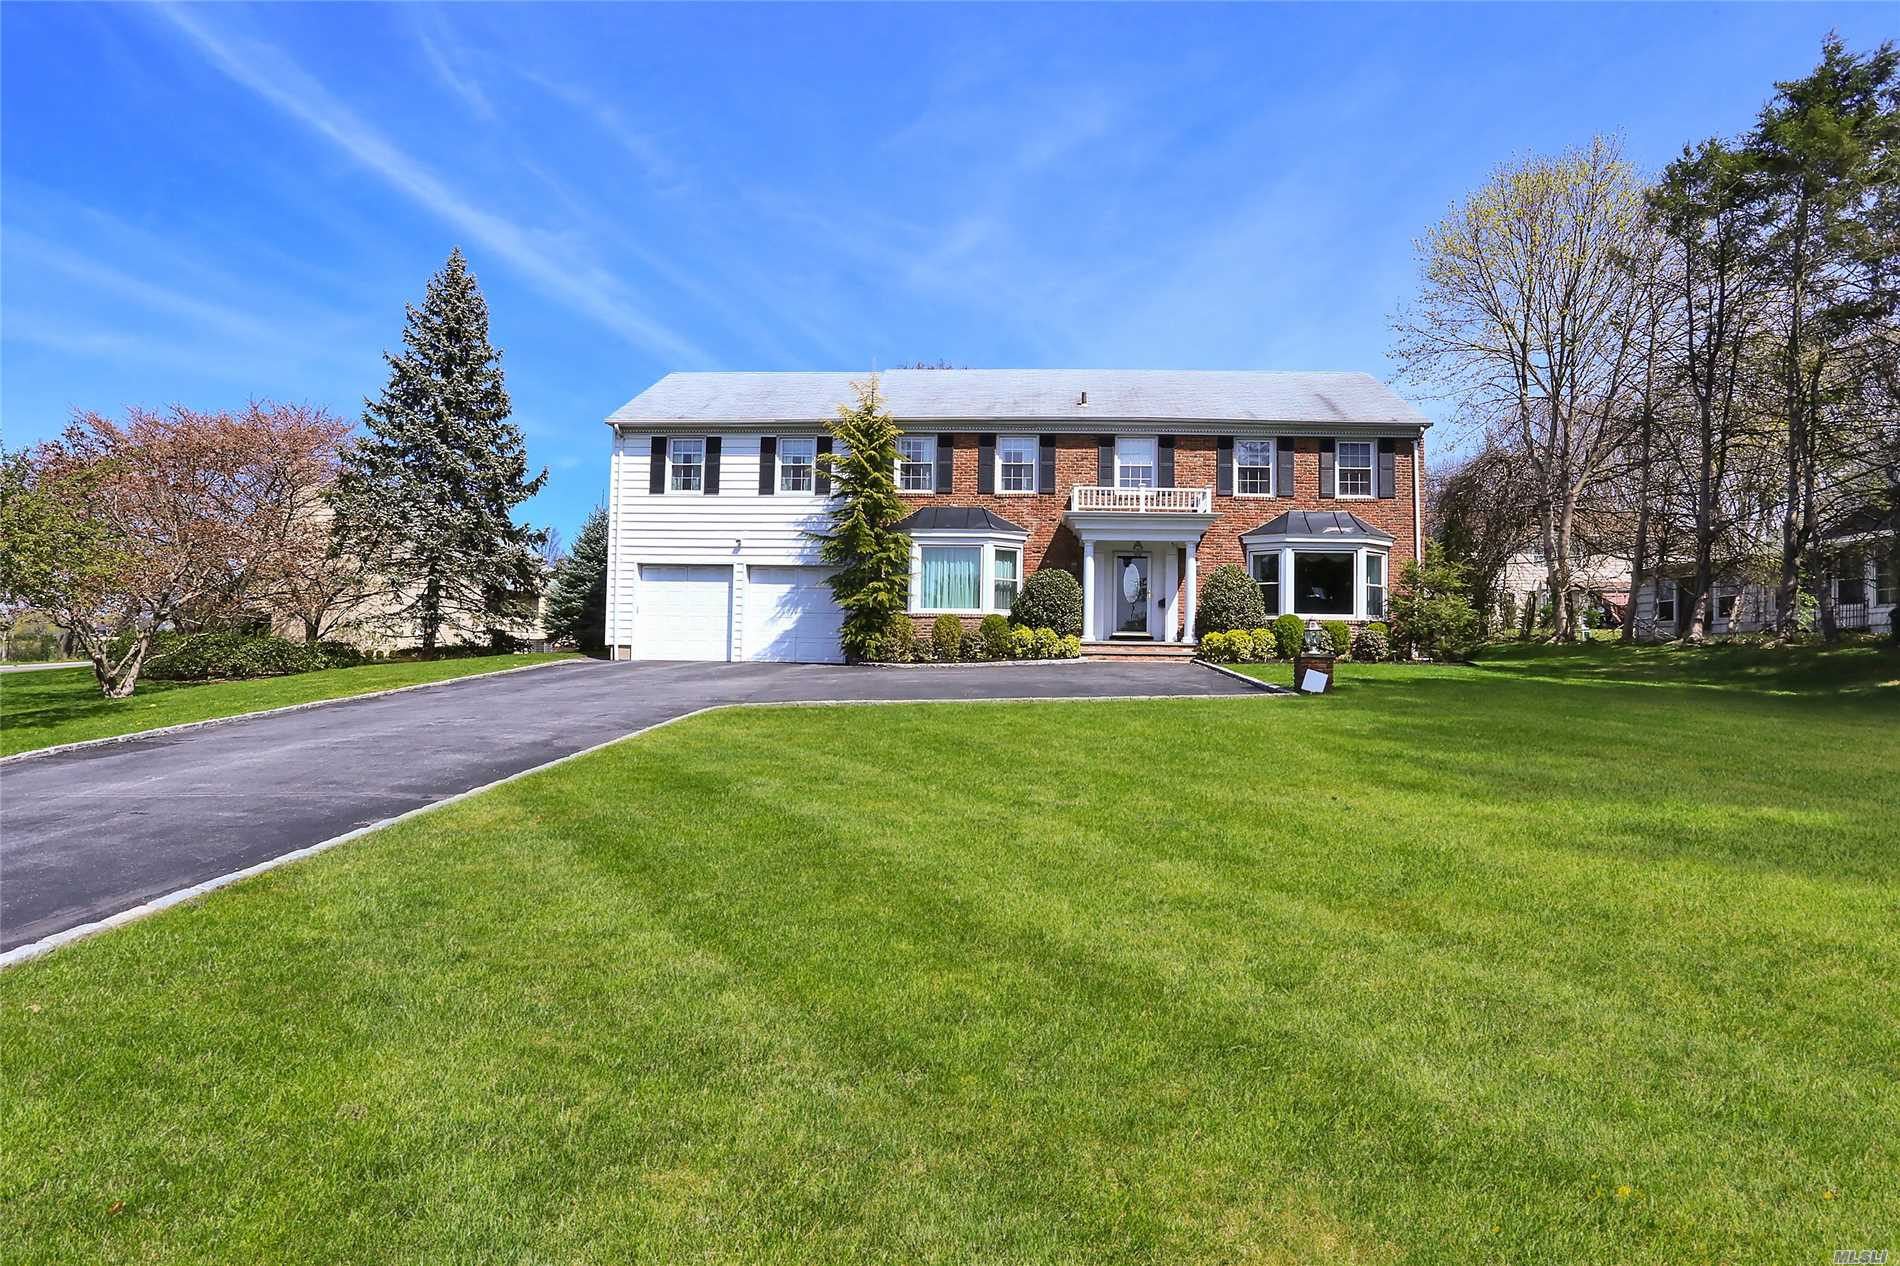 Grand Entry Foyer, Flr, Banquet Dr W Coffered Ceil, Incredible Eik W Massive Grt Rm W Fp And Yr Rnd Sunrm, Central Vac, Two 1/2 Bths, Mudroom. Beautiful Moldings Thruout. Bridal Staircase Leads Up To Mbr W Fbth, 5 Addit'l Brs, Laundry On 2nd Fl. Fbth. Spectacular Backyard W Custom Porte-Cochere & Blt In Bbq & Surround Sound. Basement Is Massive W Play And Media Spaces, .5Bth, Surround Sound.